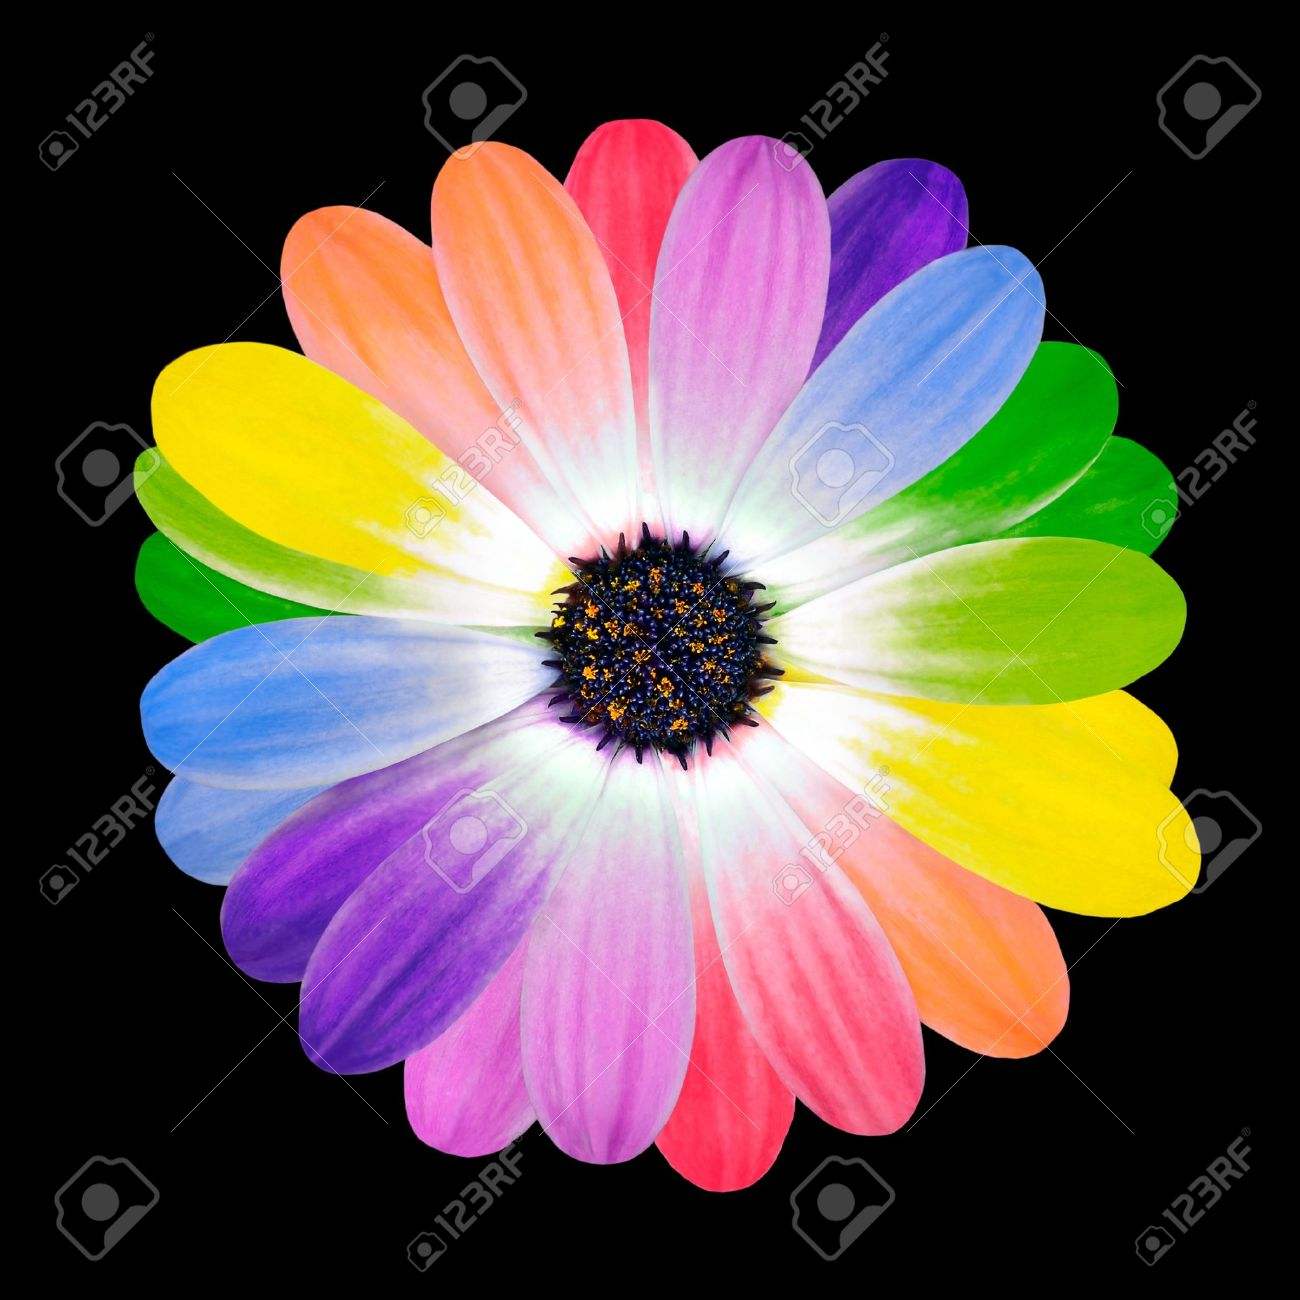 Rainbow Flower Multi Colored Petals Of Daisy Flower Isolated Stock